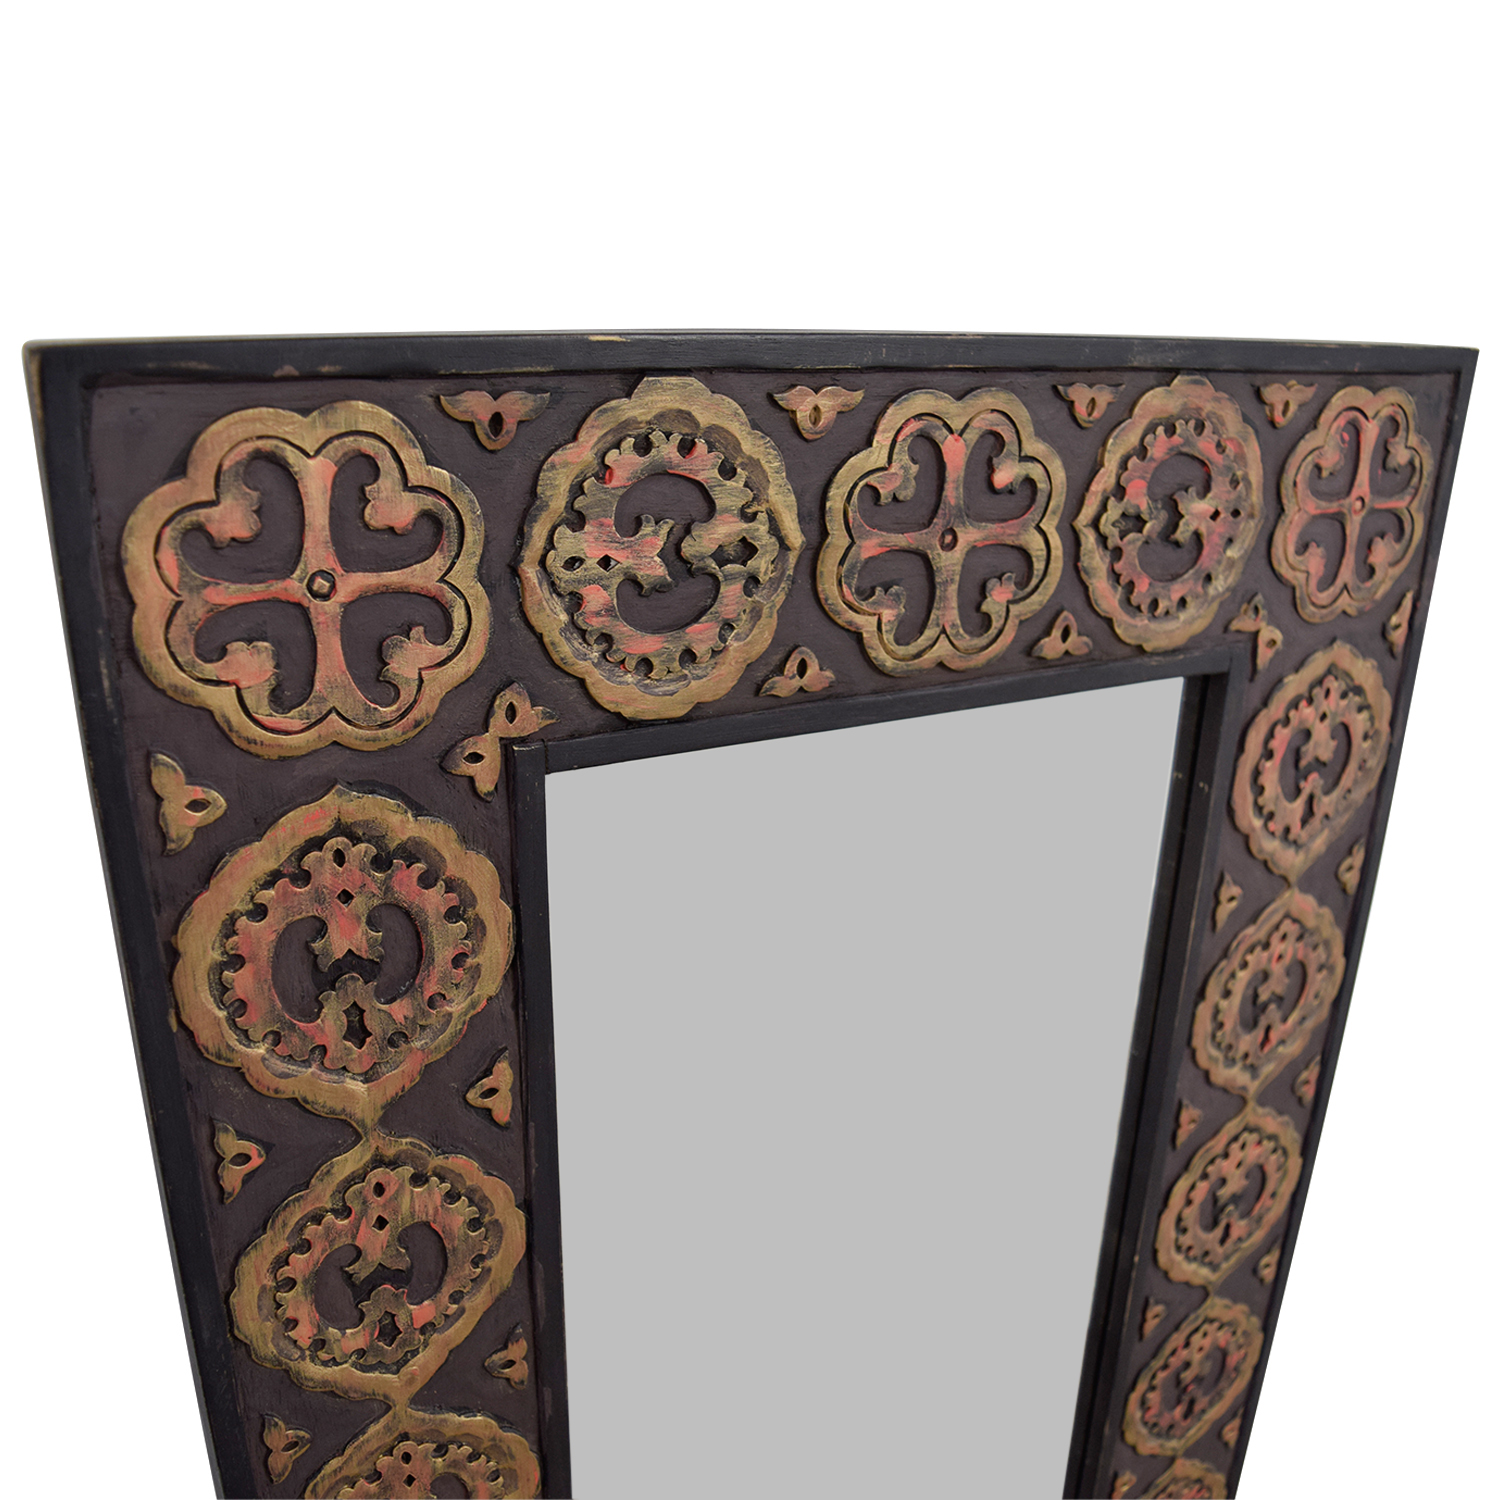 off pier imports one mirror with rustic gold emblemed frame second hand mirrored accent table dimensions reclaimed wood pub high top and bar stools outdoor storage containers